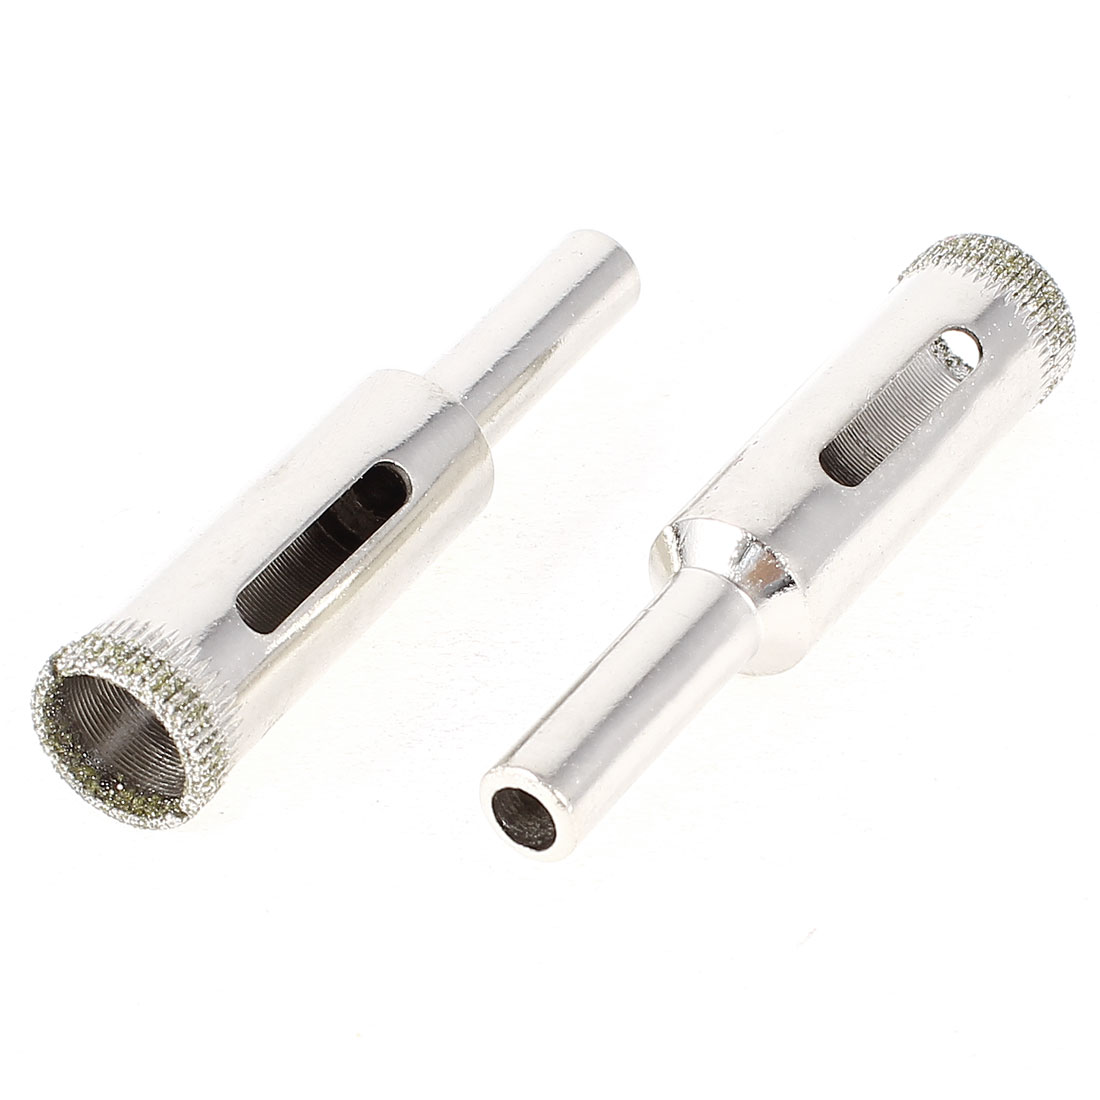 55mm Long 12mm Diamond Tool Granite Tile Glass Hole Saw Silver Tone 2pcs